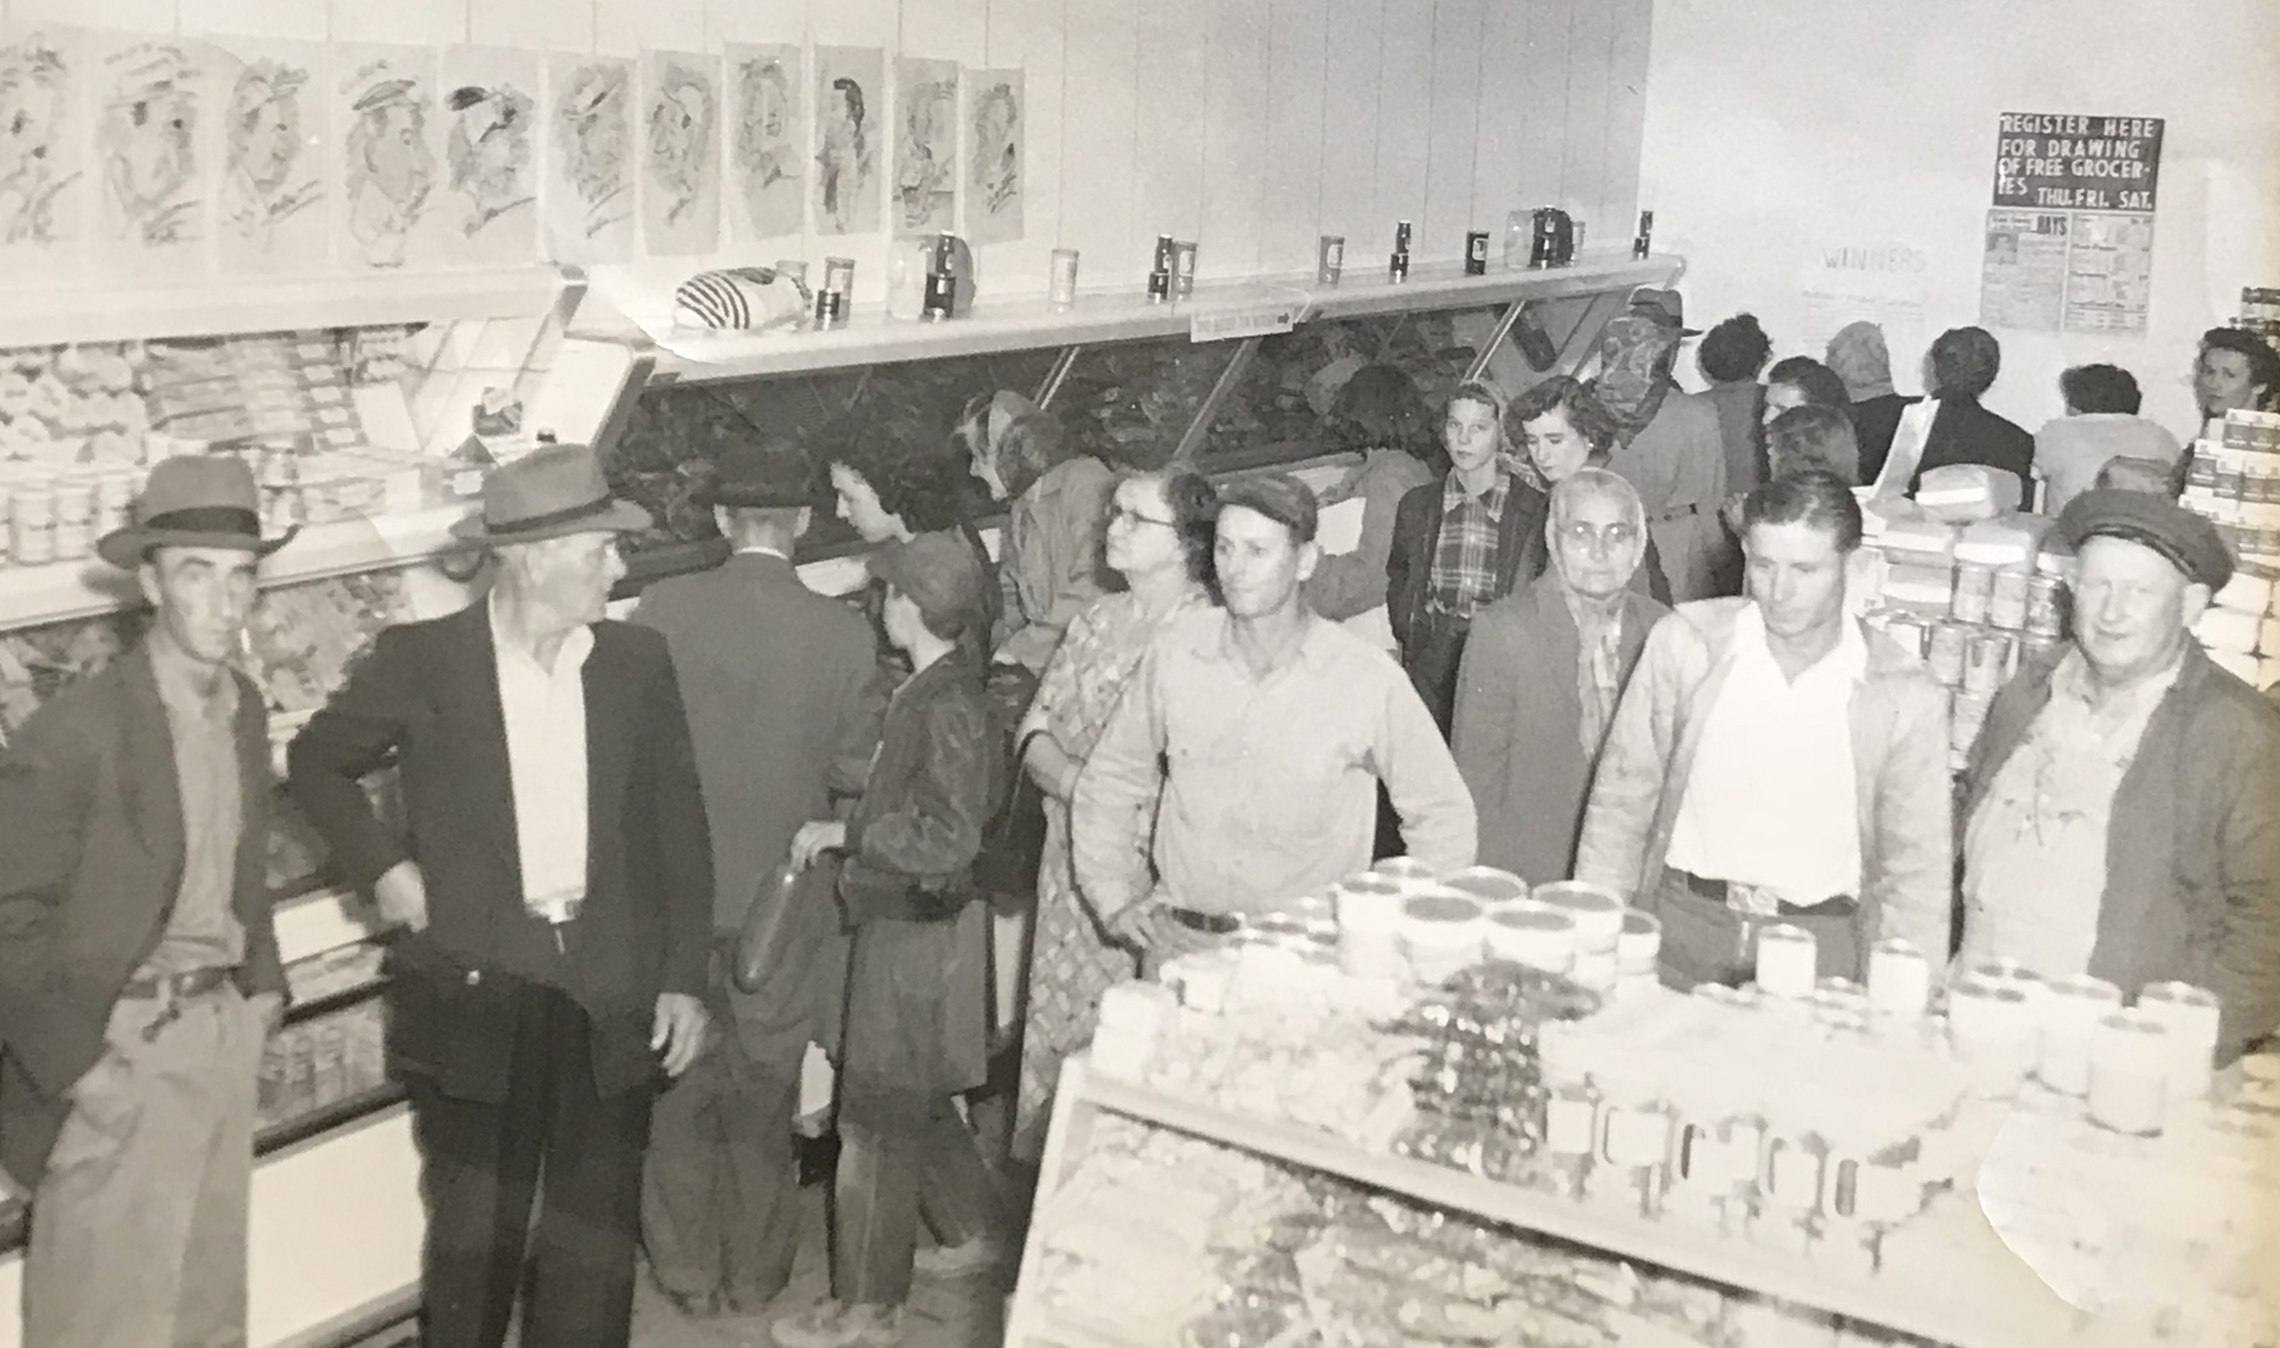 Vintage photo of Hays store and customers.